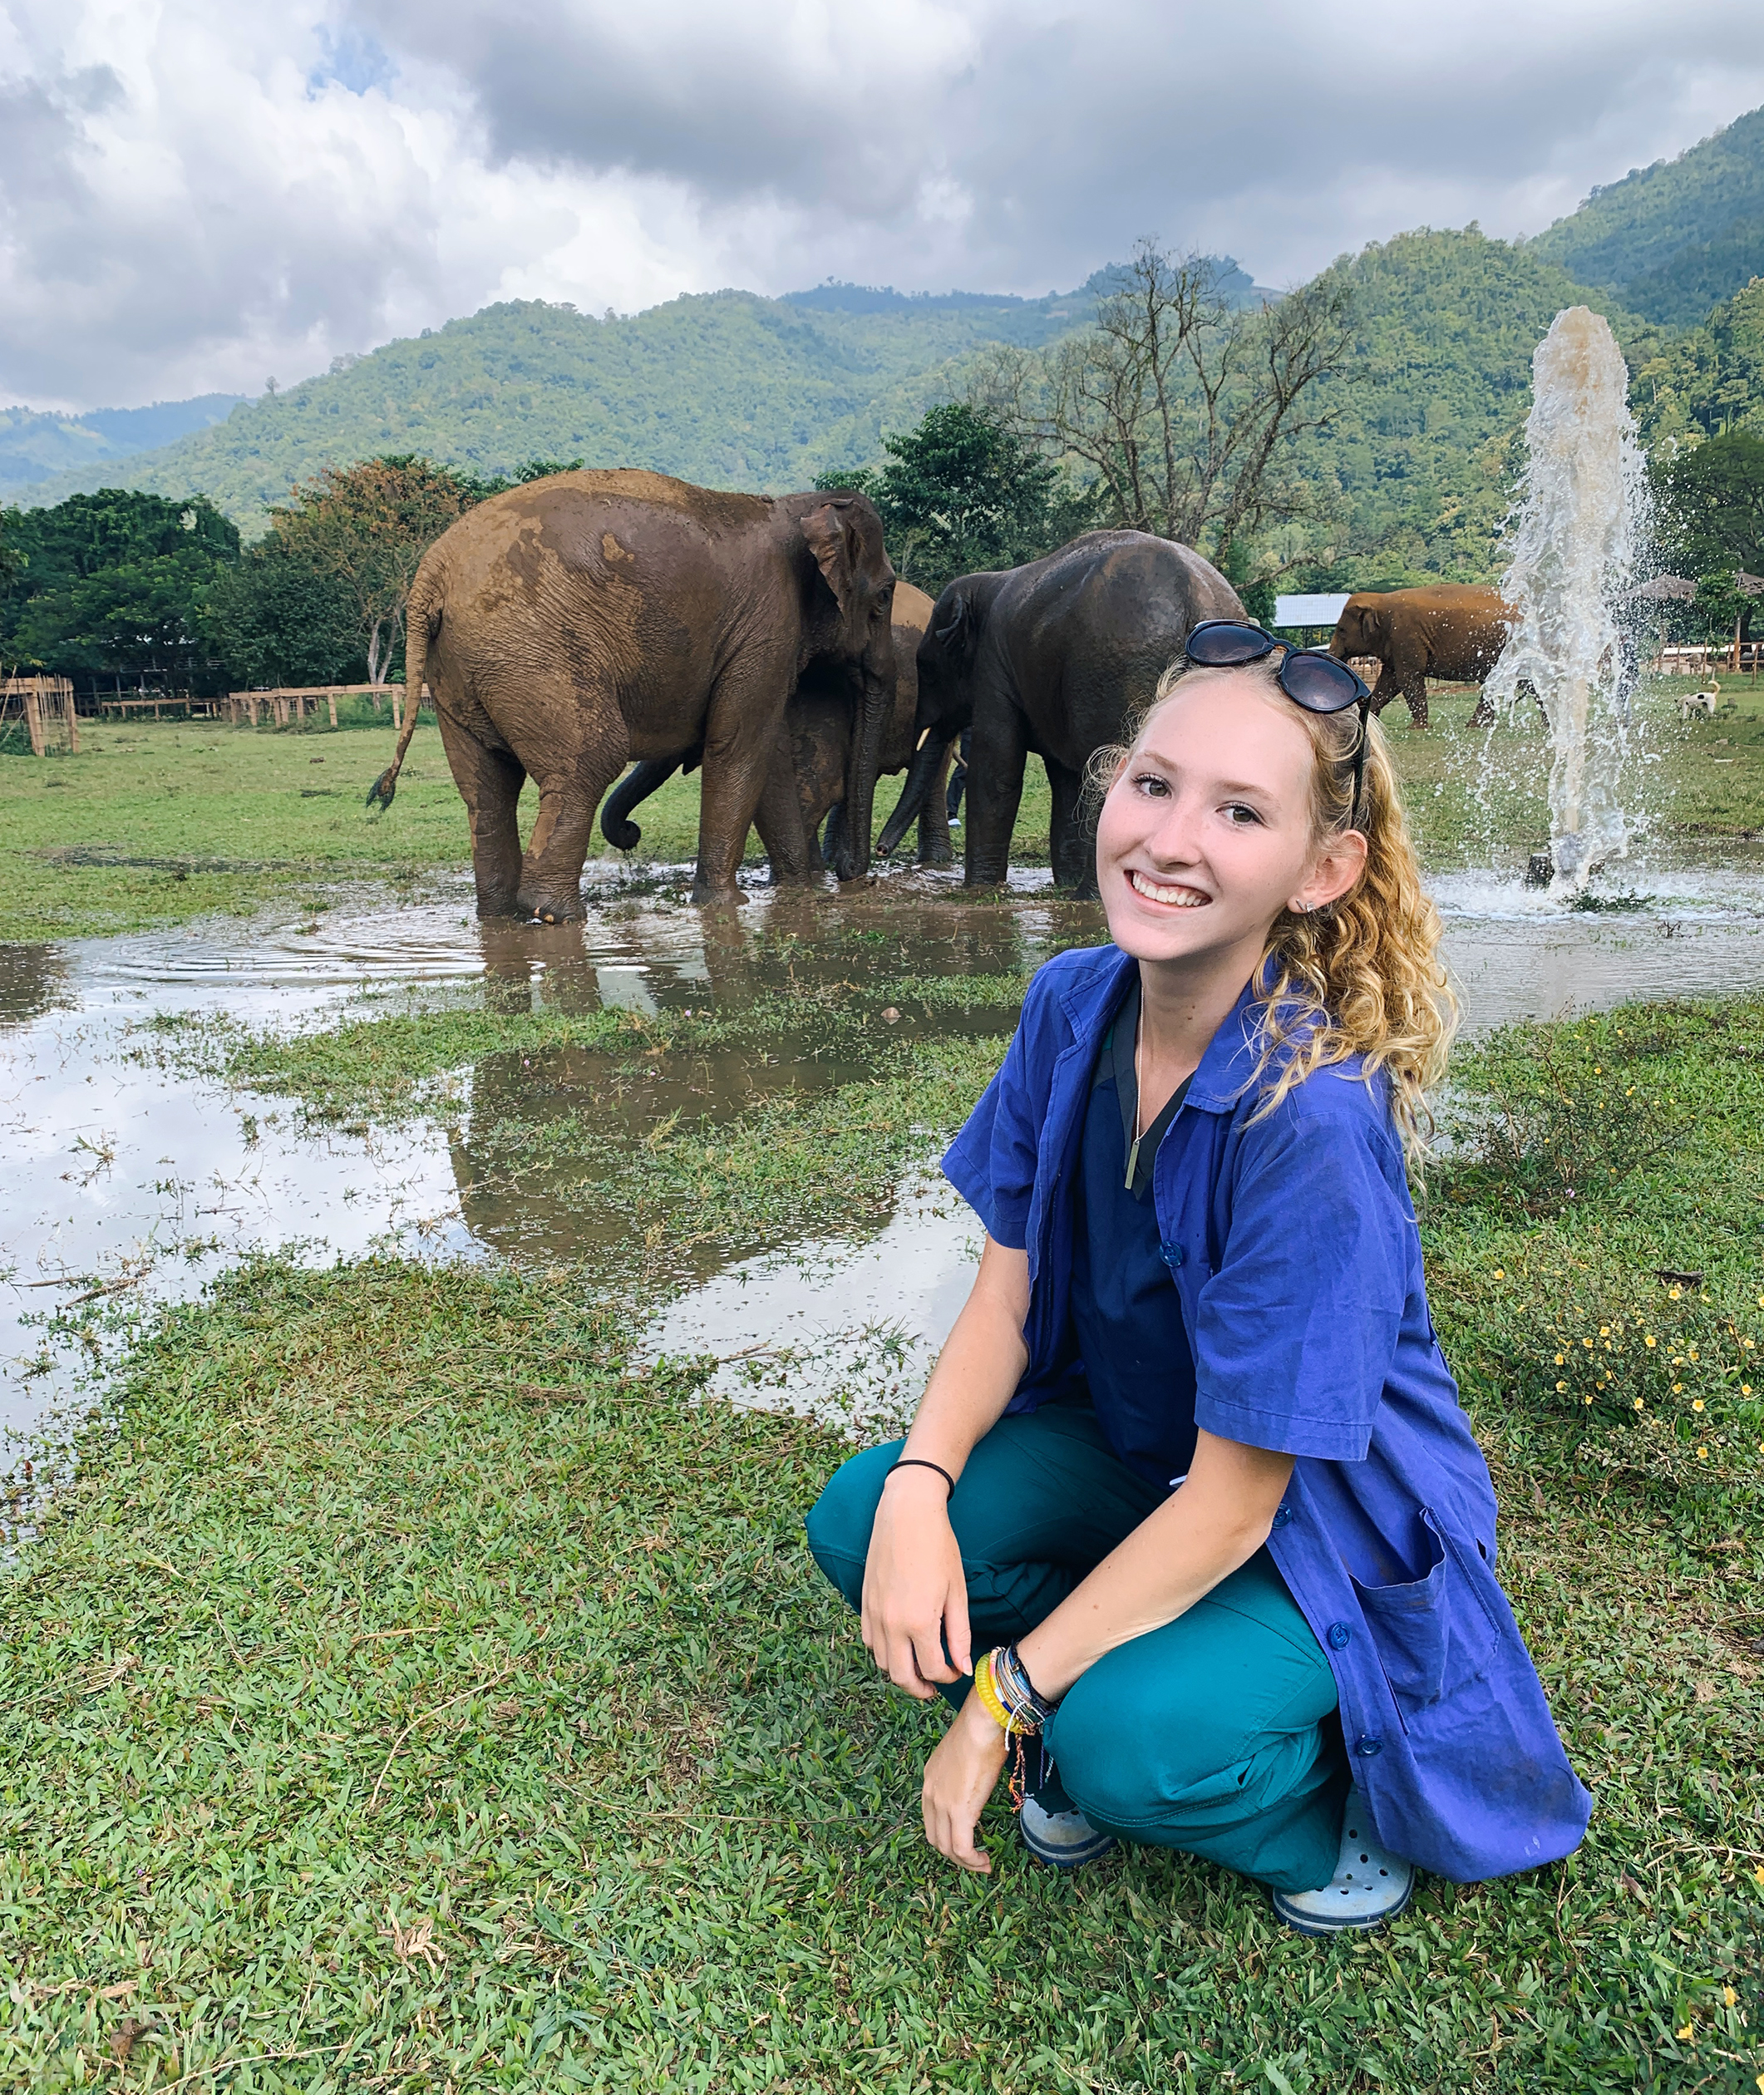 Sydney Page poses at an elephant sanctuary in Thailand